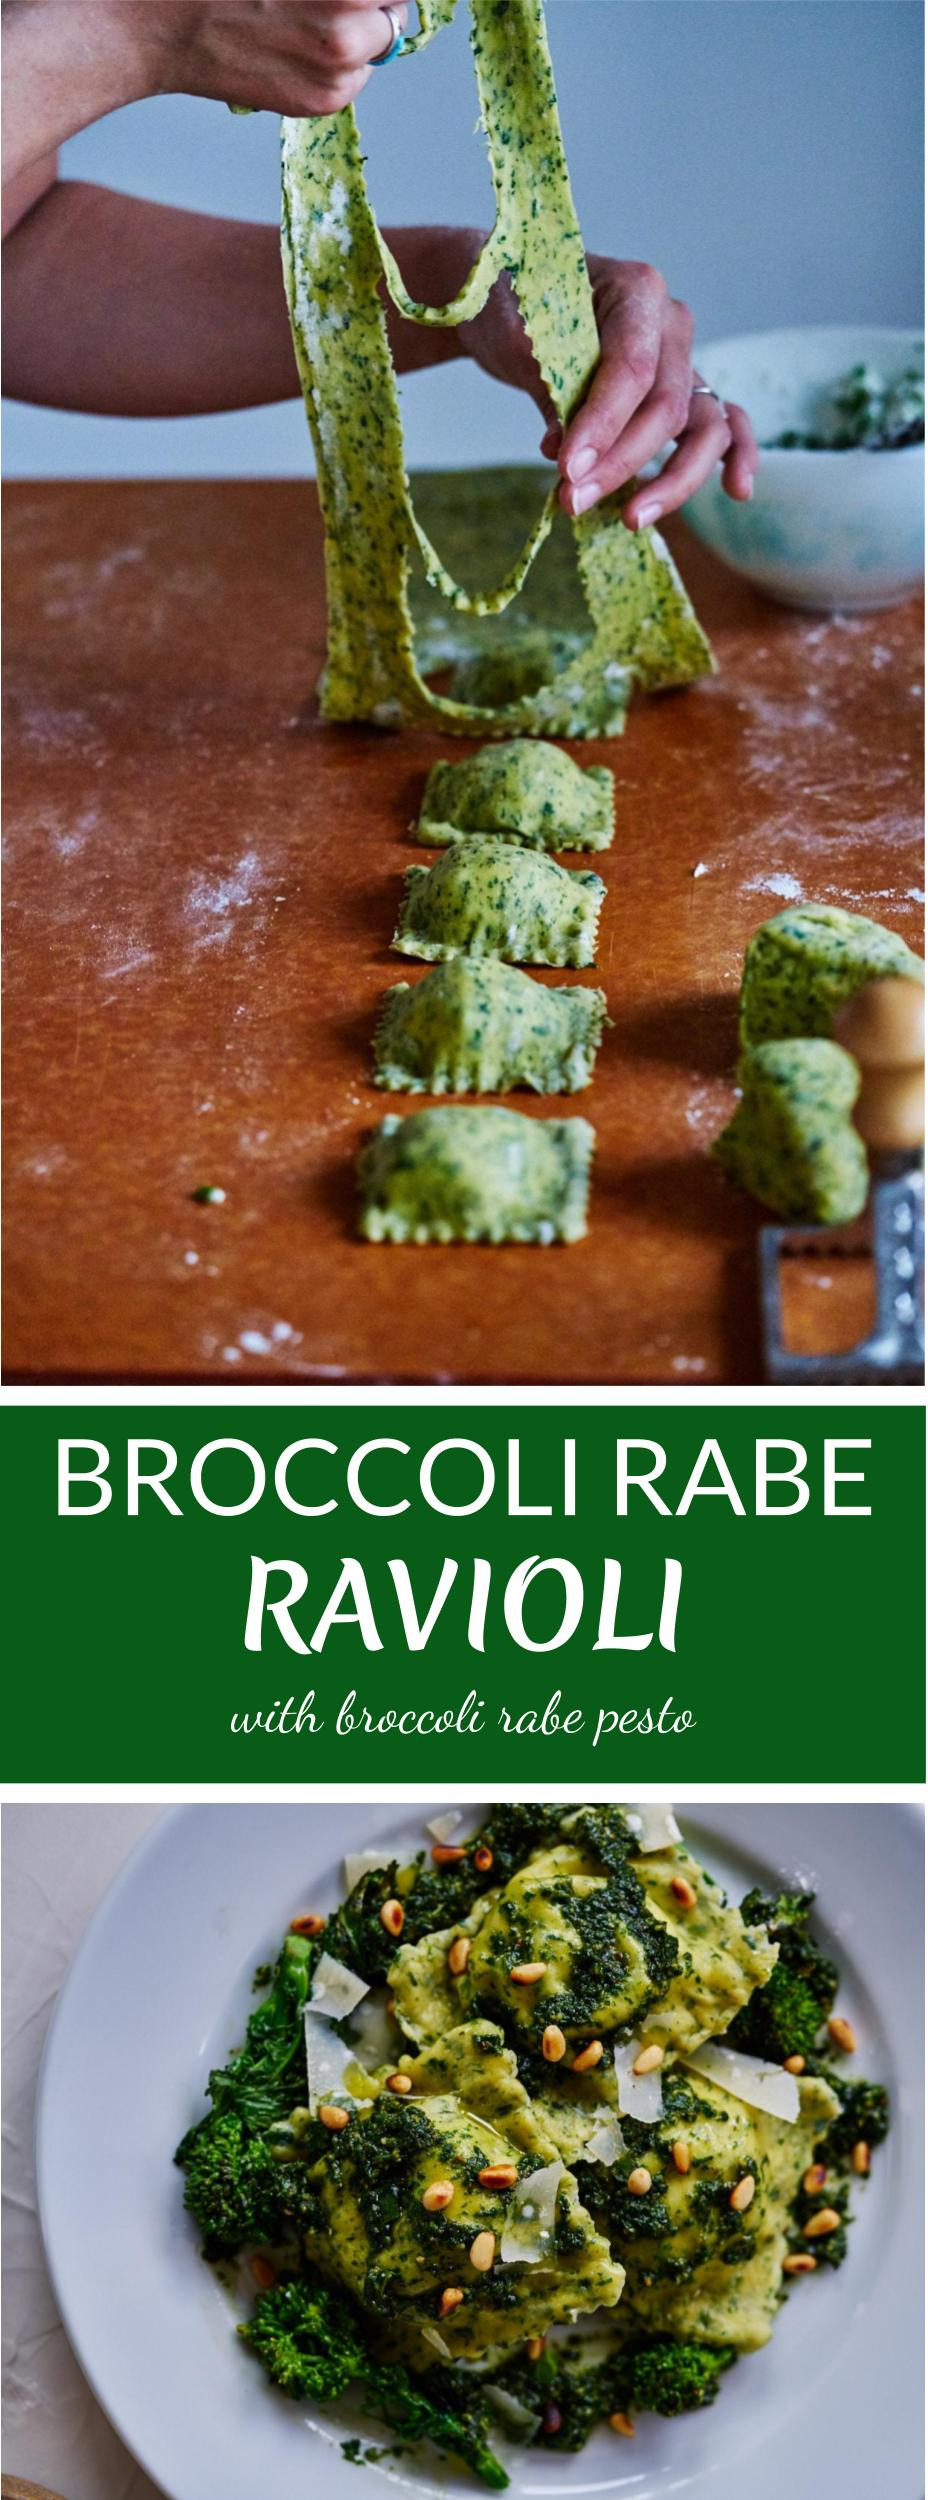 Broccoli Rabe Ravioli | Proportional Plate A wonderful way to make ravioli healthy.